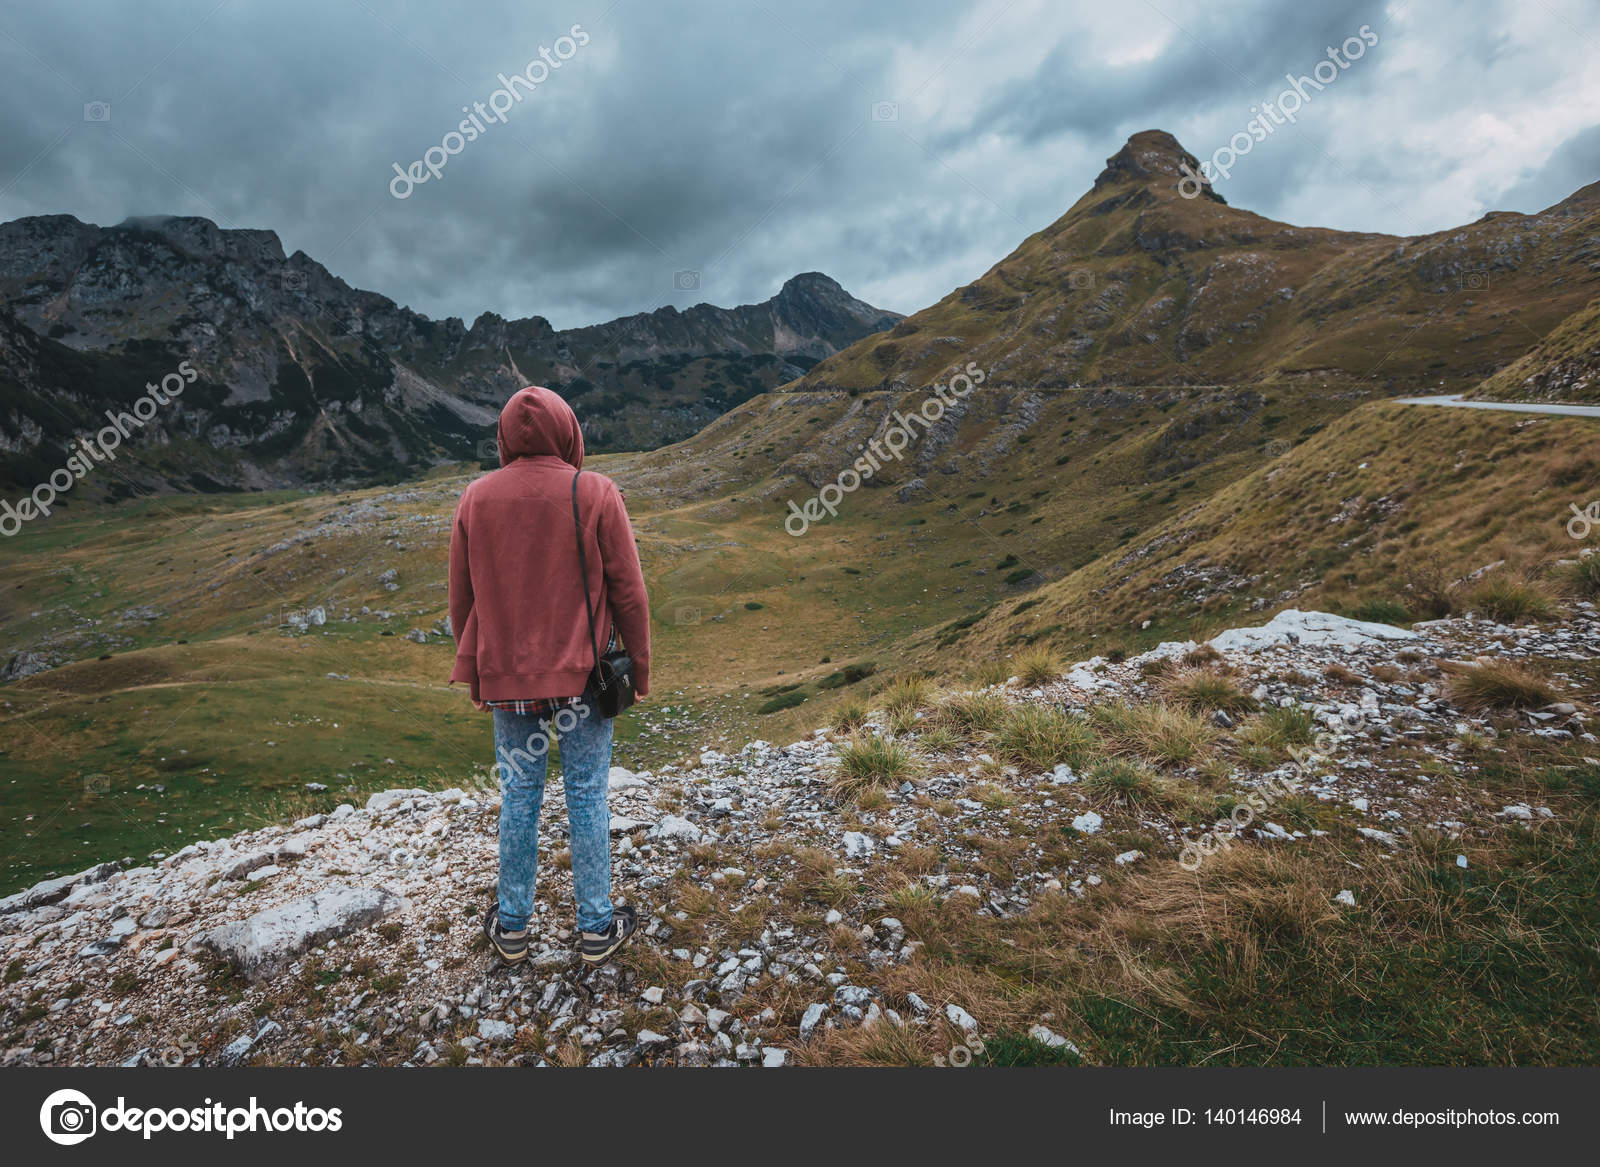 87c621fe54c7 Man Traveler hiking Travel Lifestyle concept beautiful mountains landscape  on background Summer journey adventure vacations outdoor